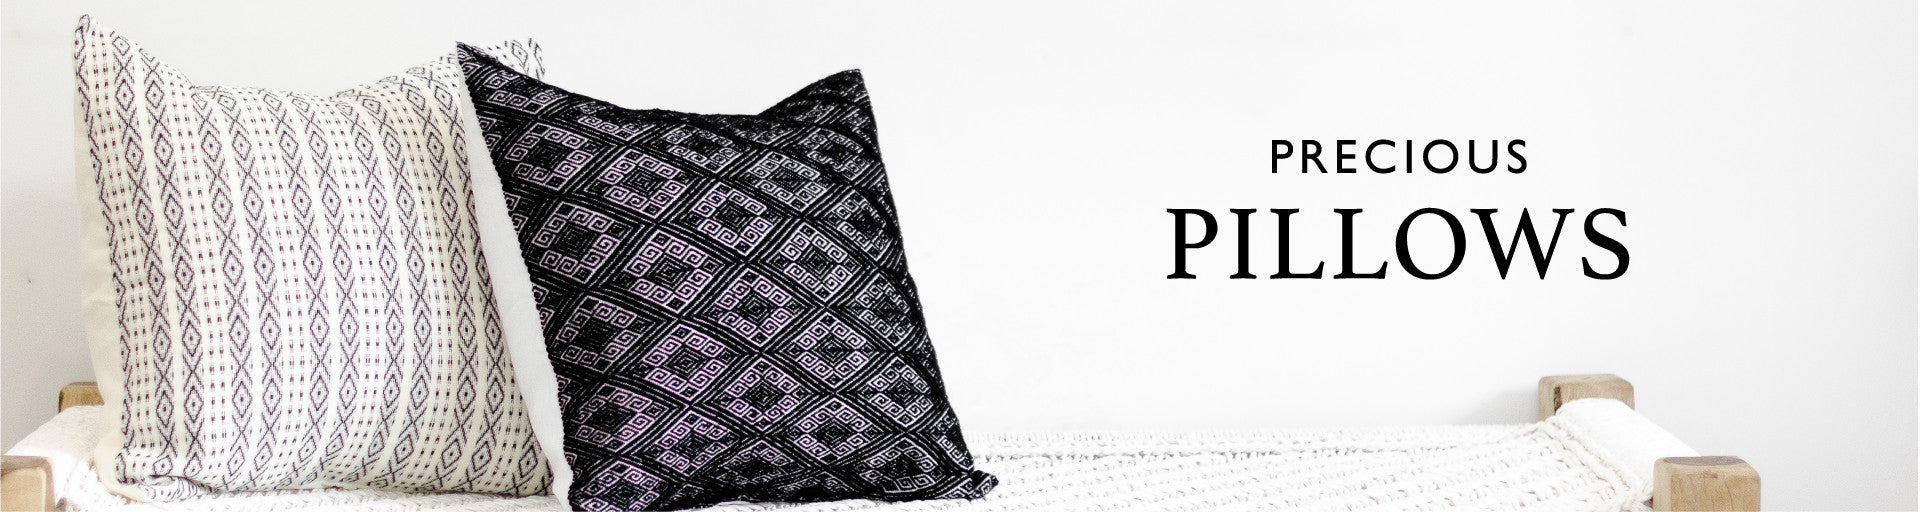 pillow pillows viyet woven traditional front throw pattern designer furniture accessories geometric acc